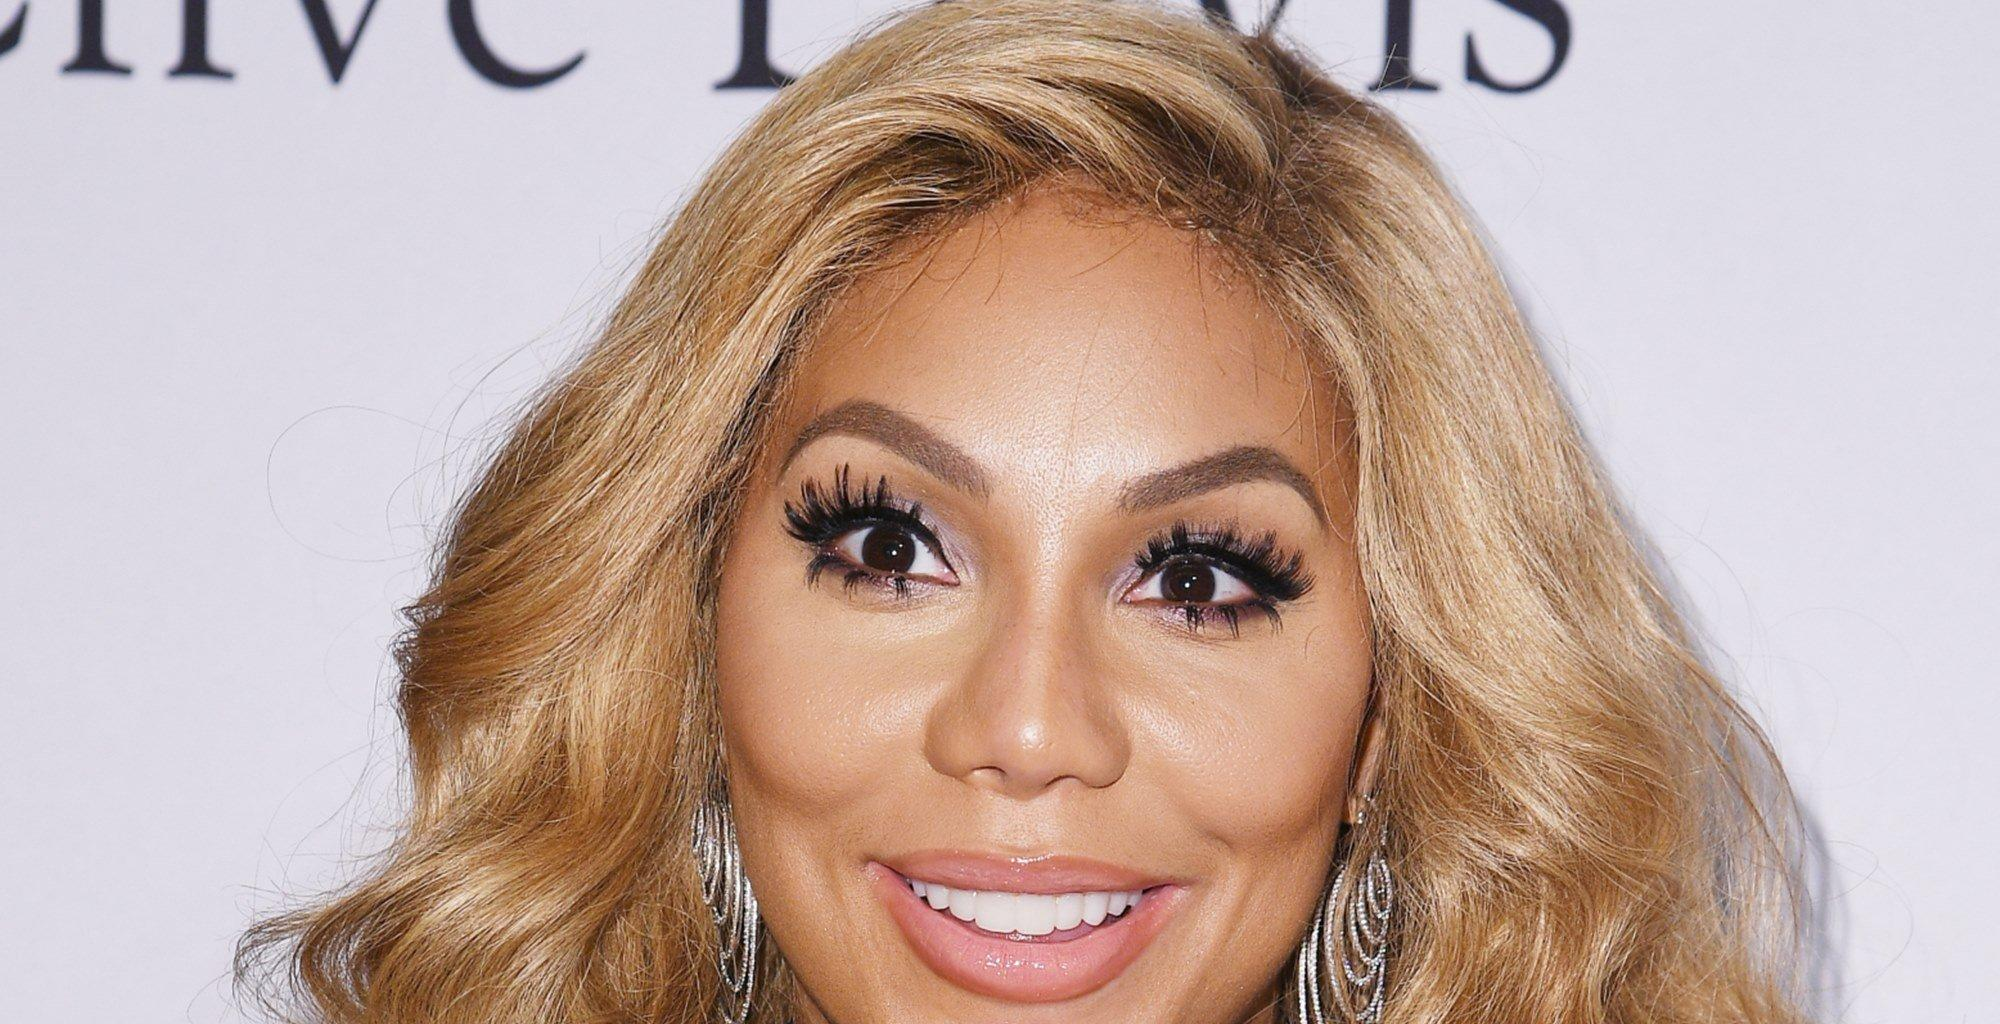 Tamar Braxton Has A New Podcast Episode Out - Hear It Here